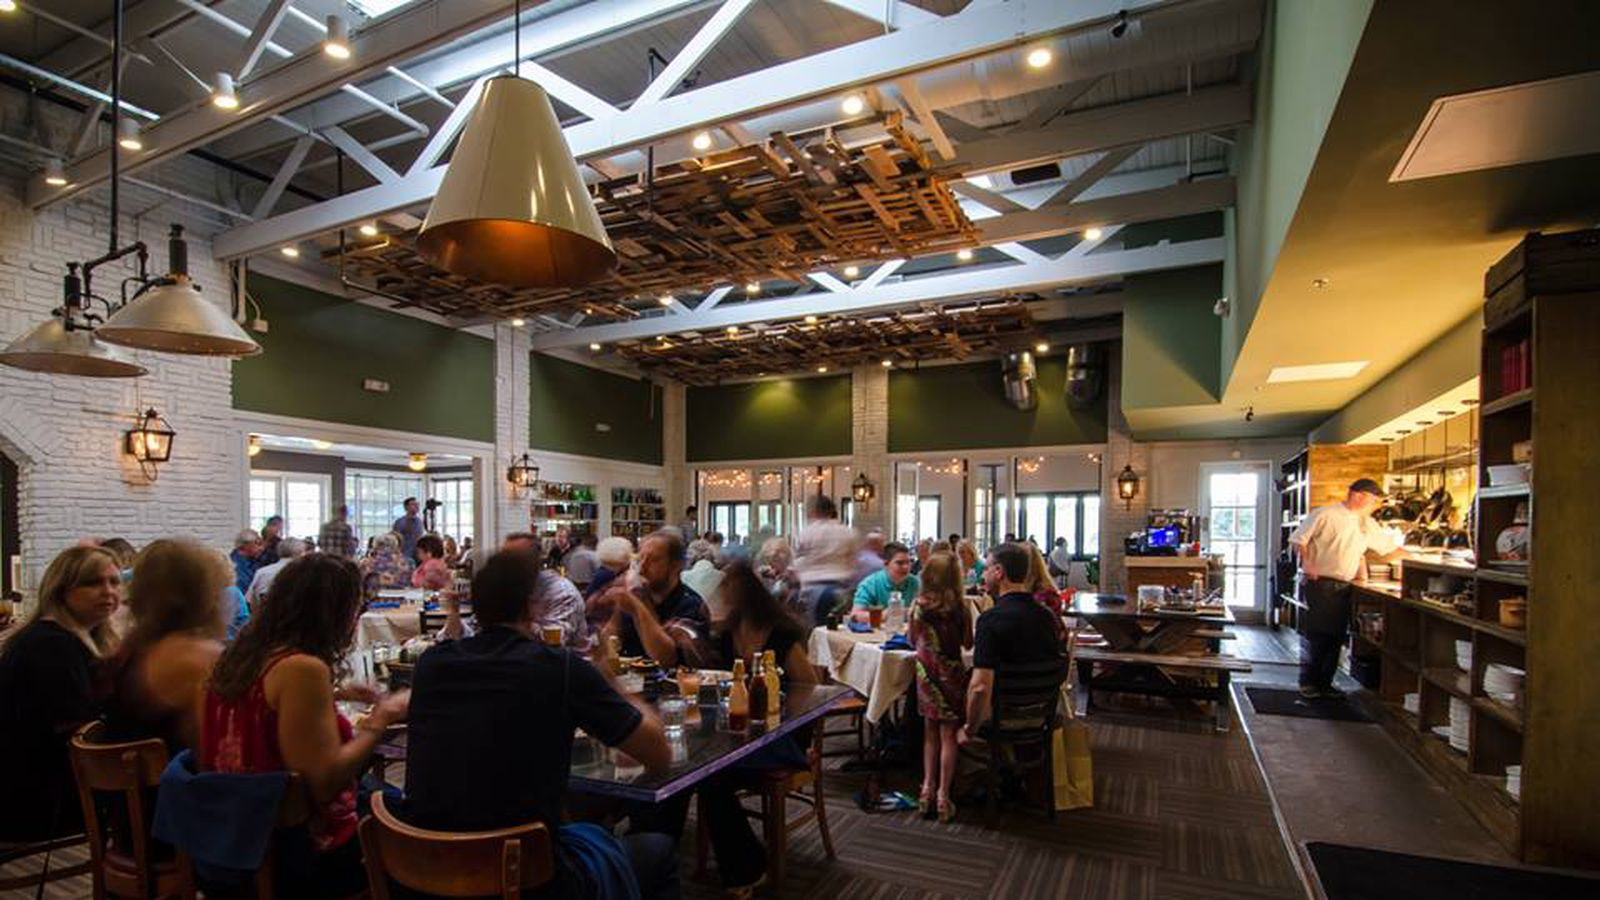 Dining in the burbs where to eat sushi bbq more in for Plano restaurante